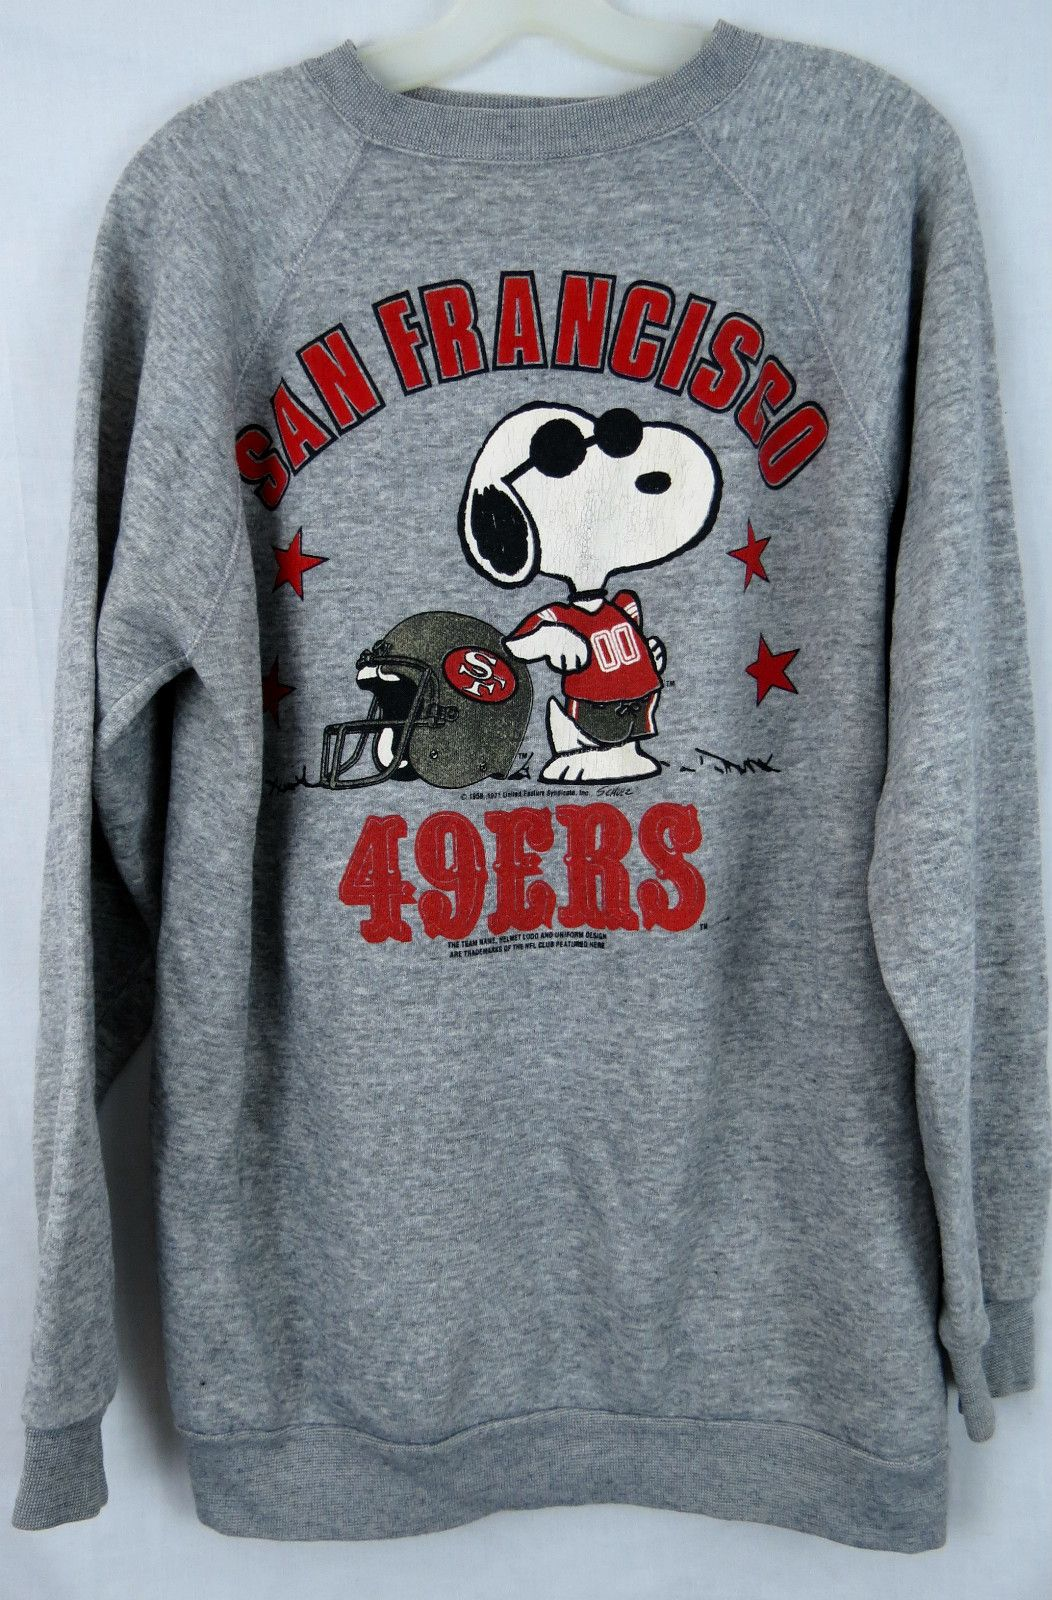 VINTAGE SAN FRANCISCO 49ers SWEATSHIRT SNOOPY JOE COOL NFL VINTAGE 90s LARGE a9a5e7710